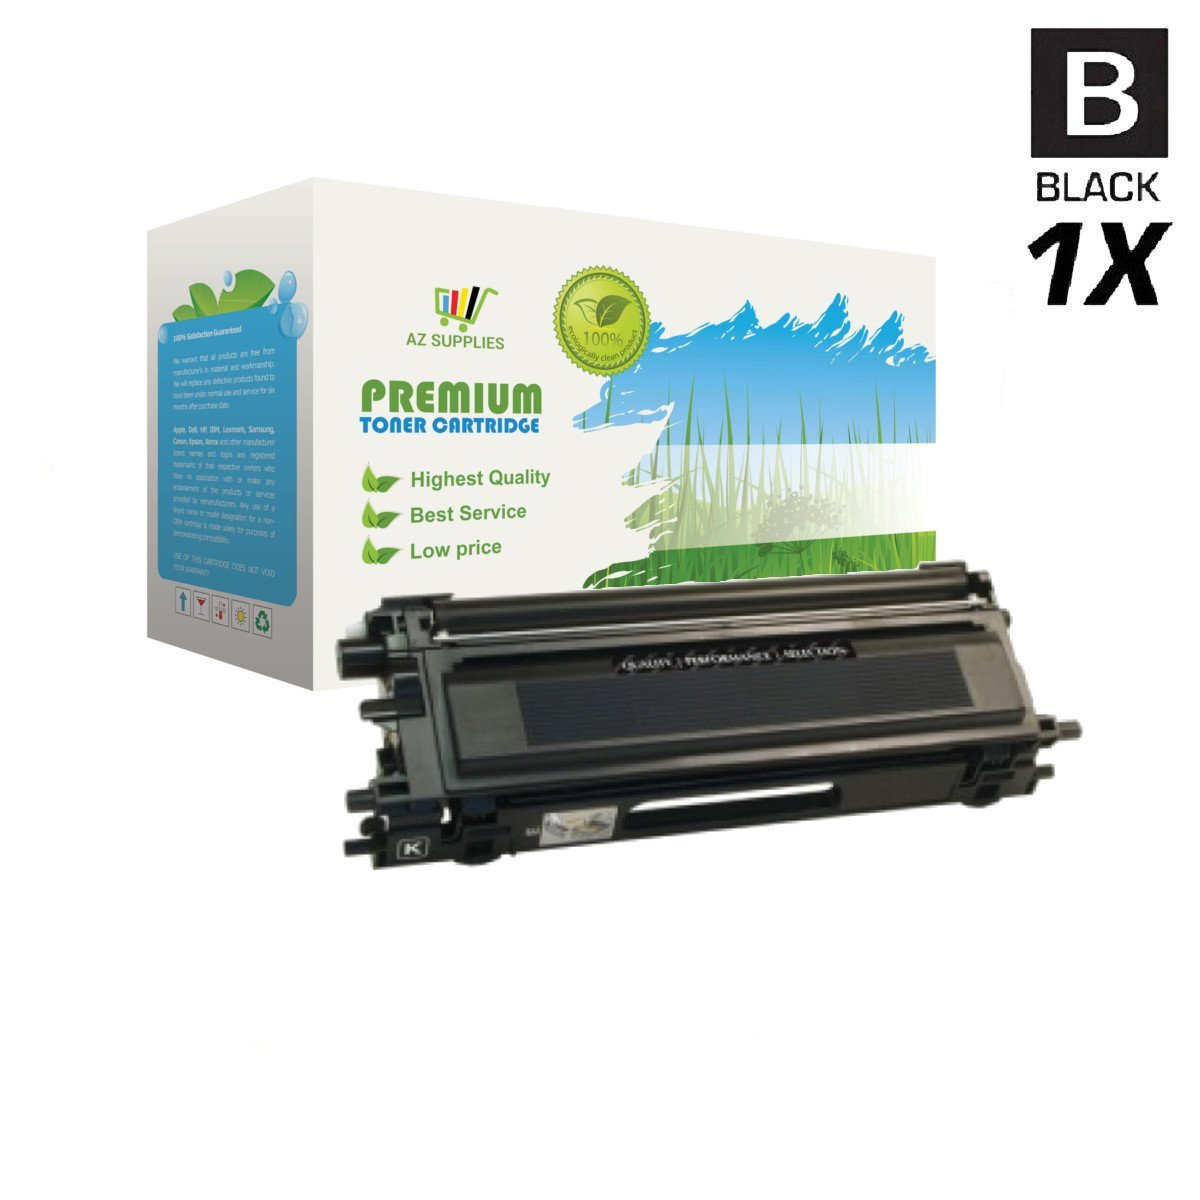 AZ Supplies Re-Manufactured Replacement TN115K High Yield Black Toner Cartridge for Brother DCP-9040CN, DCP-9045CDN, HL-4040CDN, HL-4040CN, HL-4070CDW, MFC-9440CN, MFC-9450CDN, MFC-9840CDW